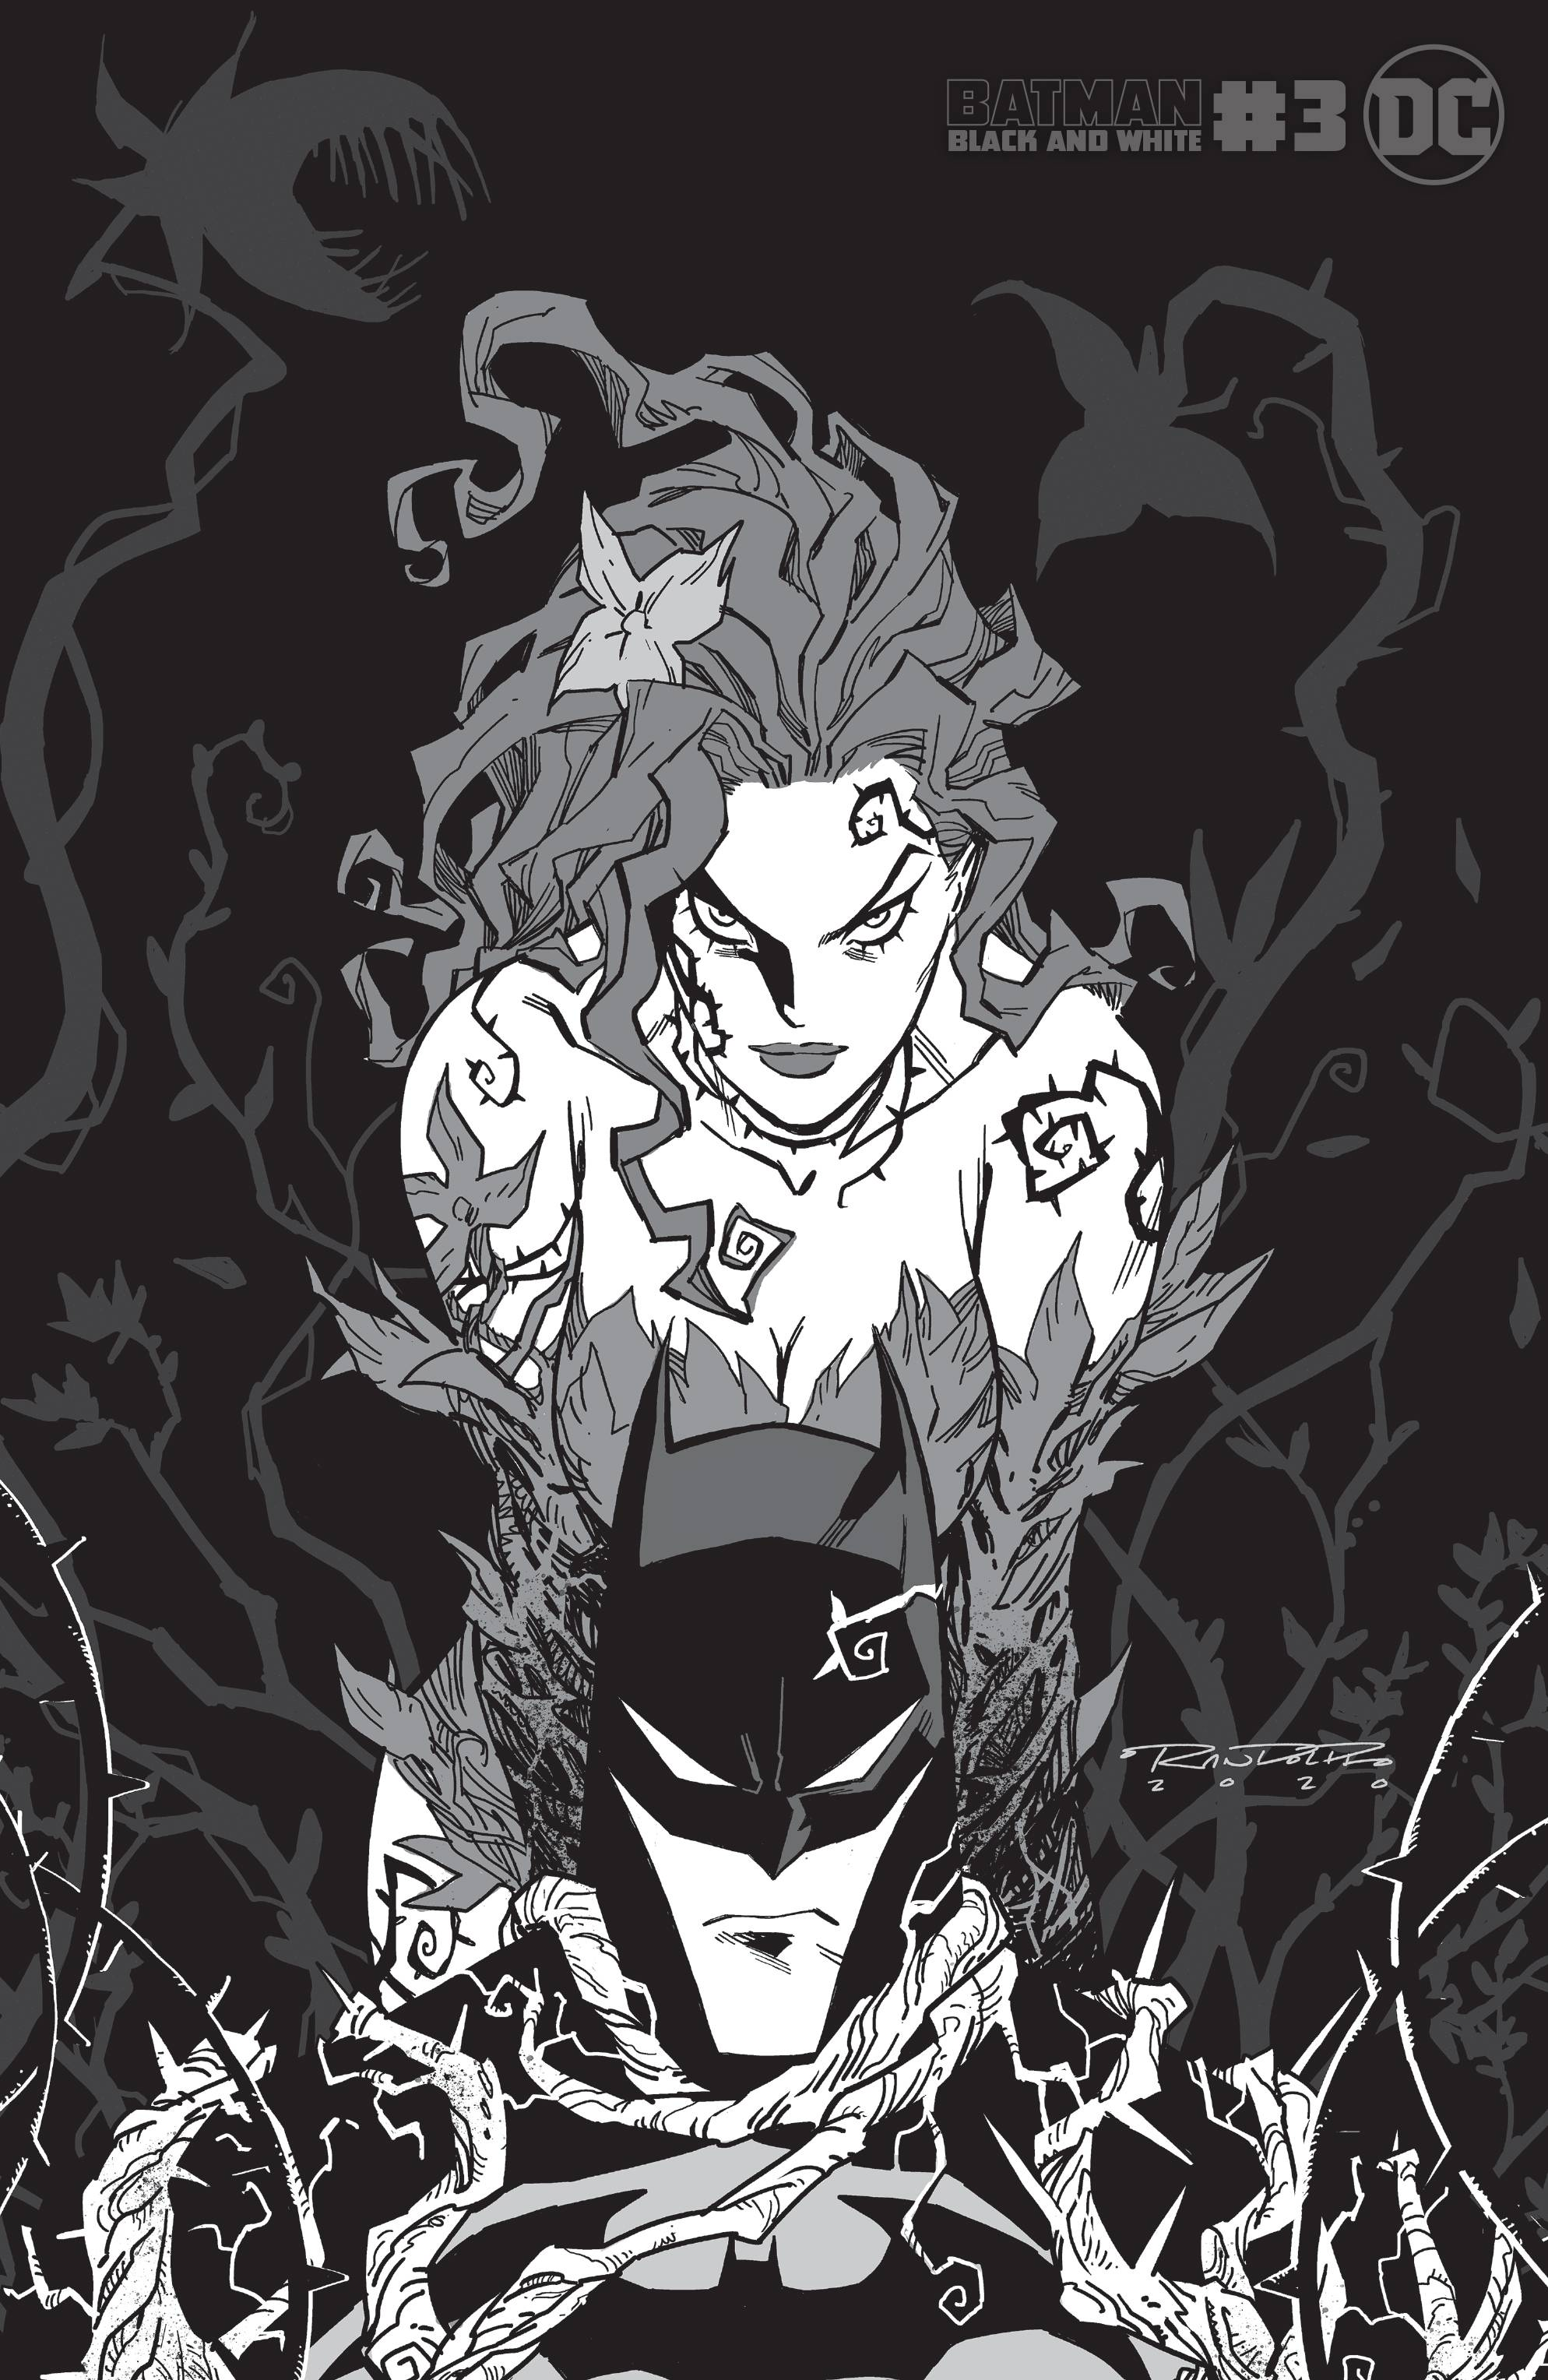 BATMAN BLACK & WHITE #3 (OF 6) POISON IVY VAR BY KHARY RANDO